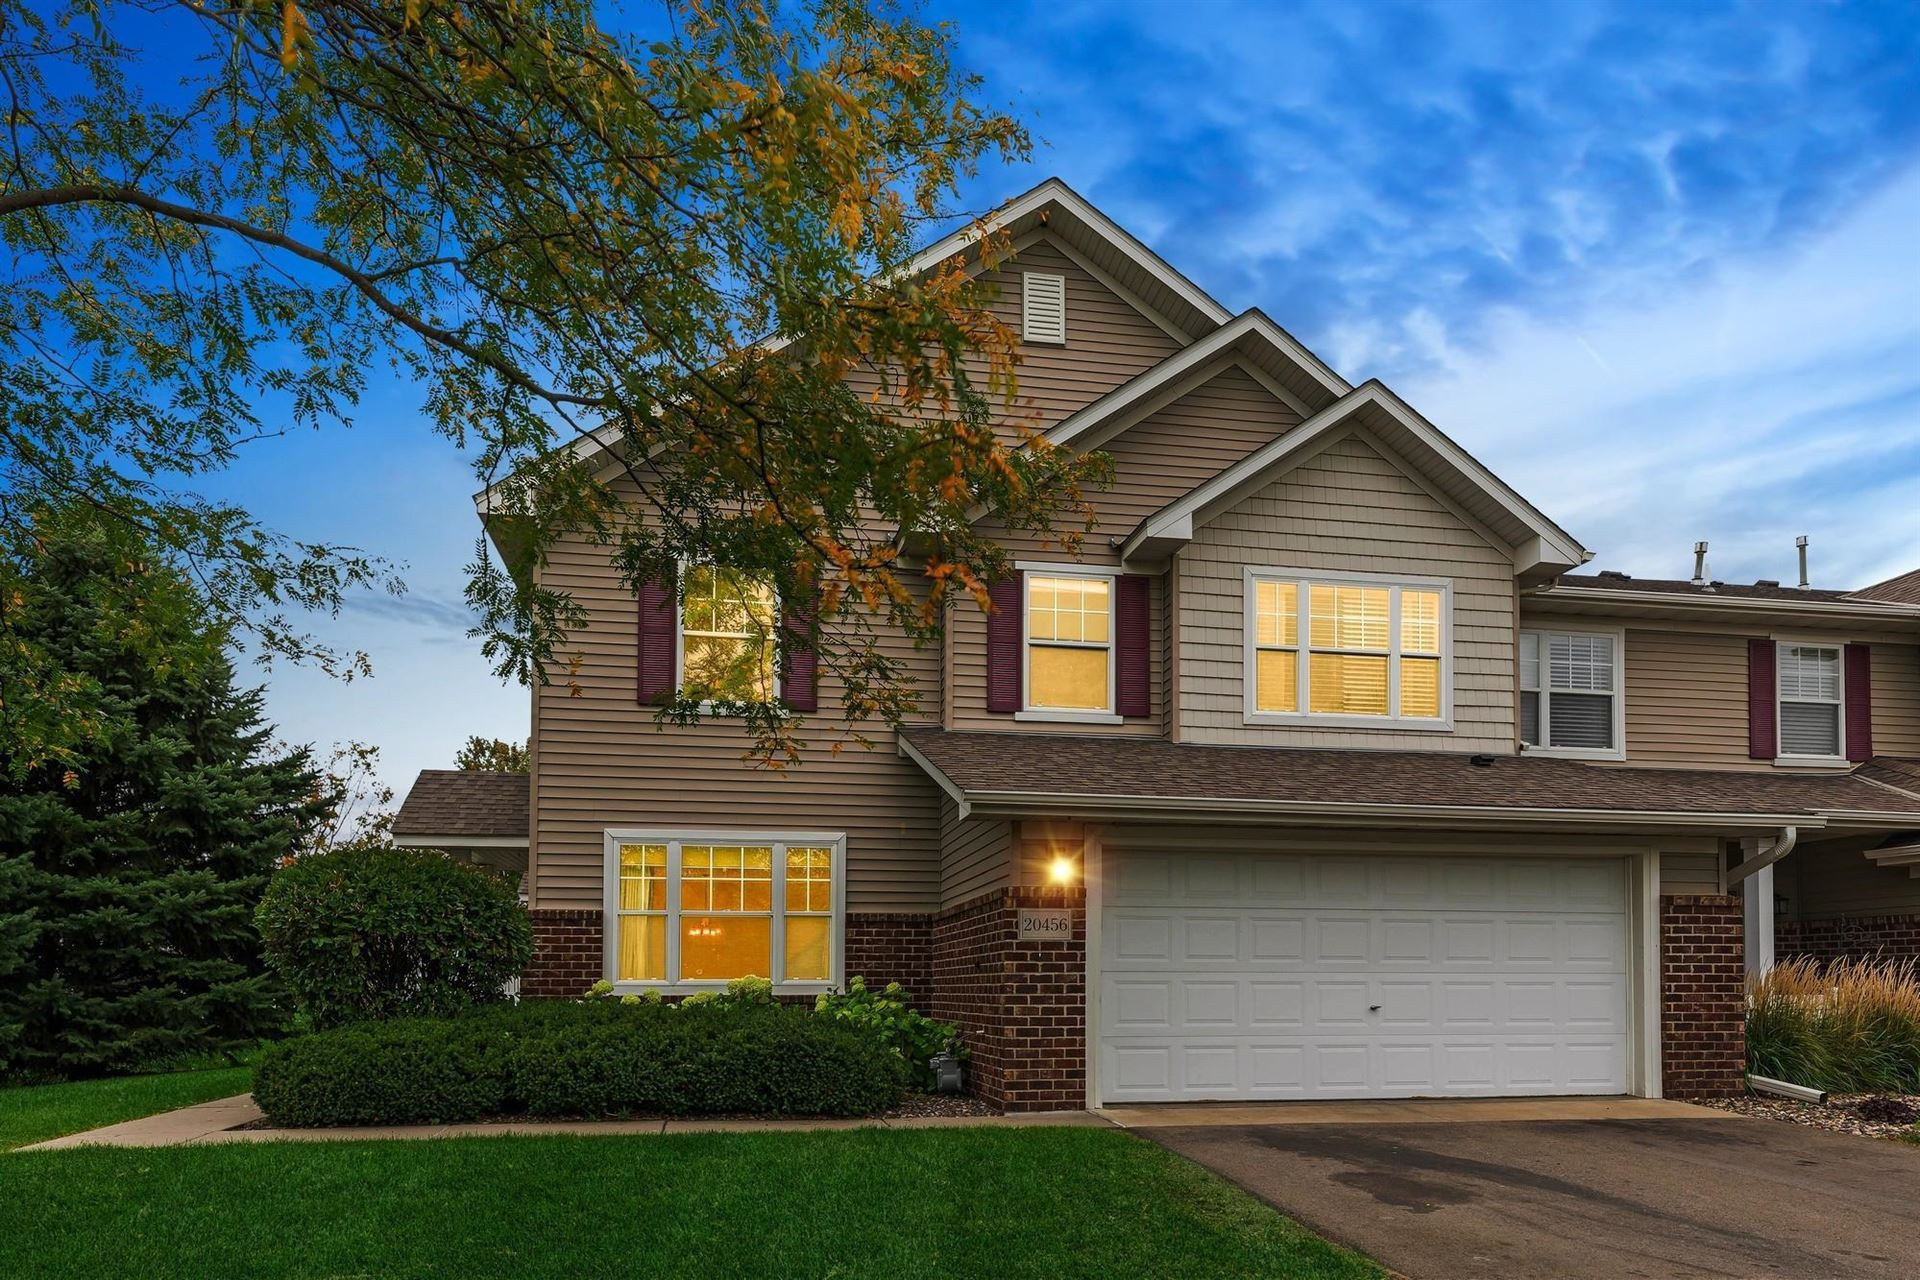 Photo of 20456 Kensfield Trail #1106, Lakeville, MN 55044 (MLS # 6017604)